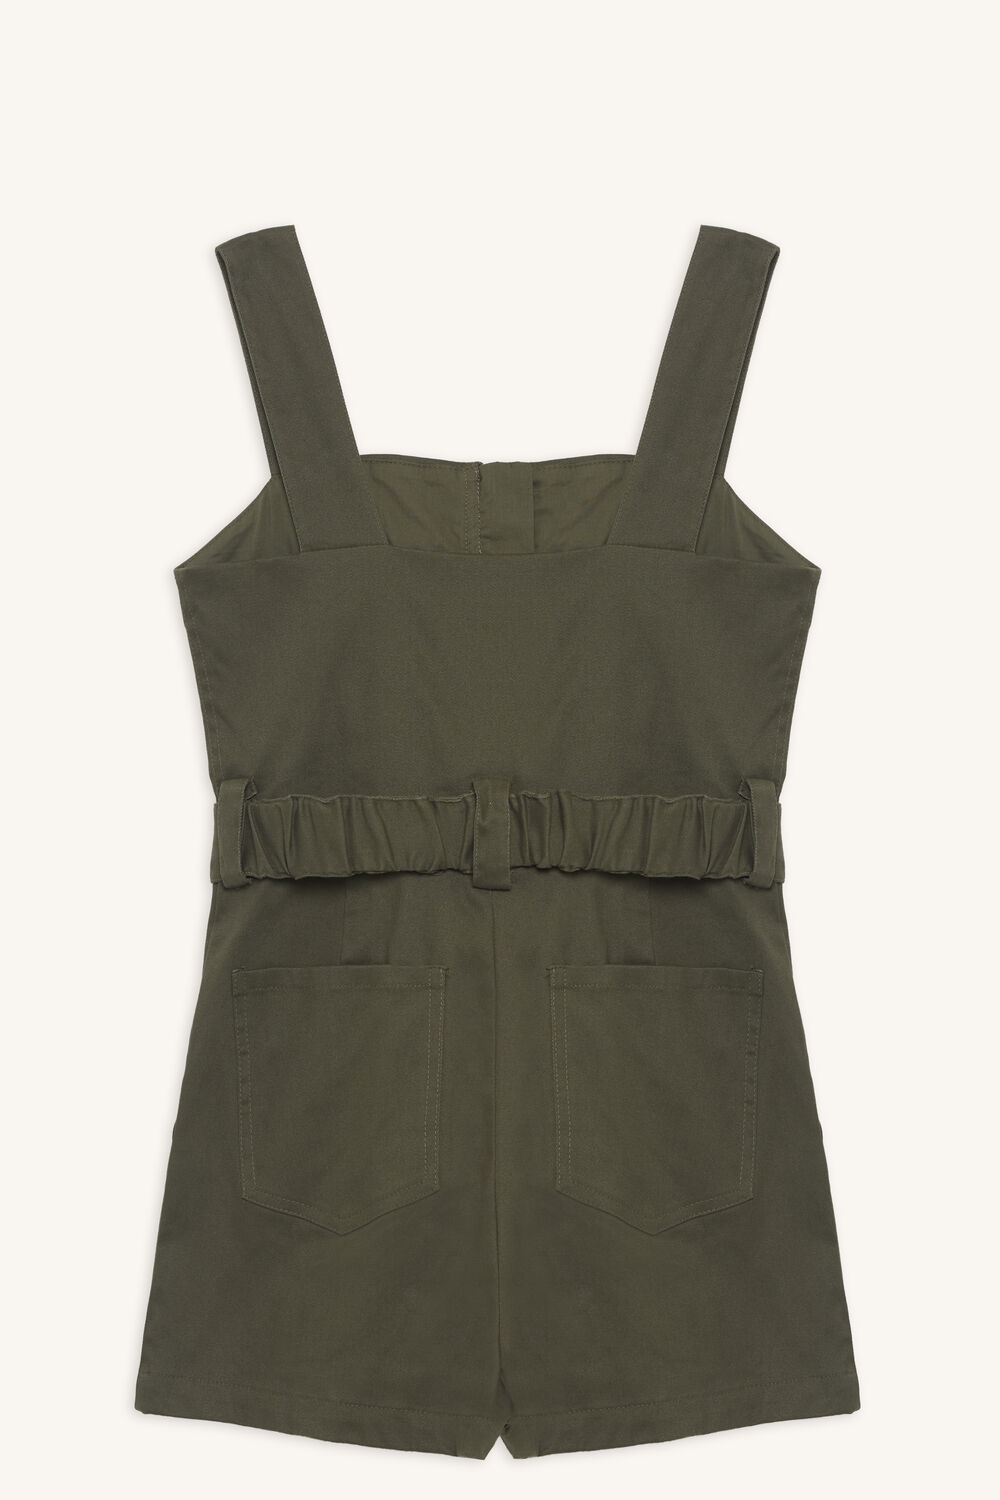 NEL UTILITY PLAYSUIT in colour OLIVINE